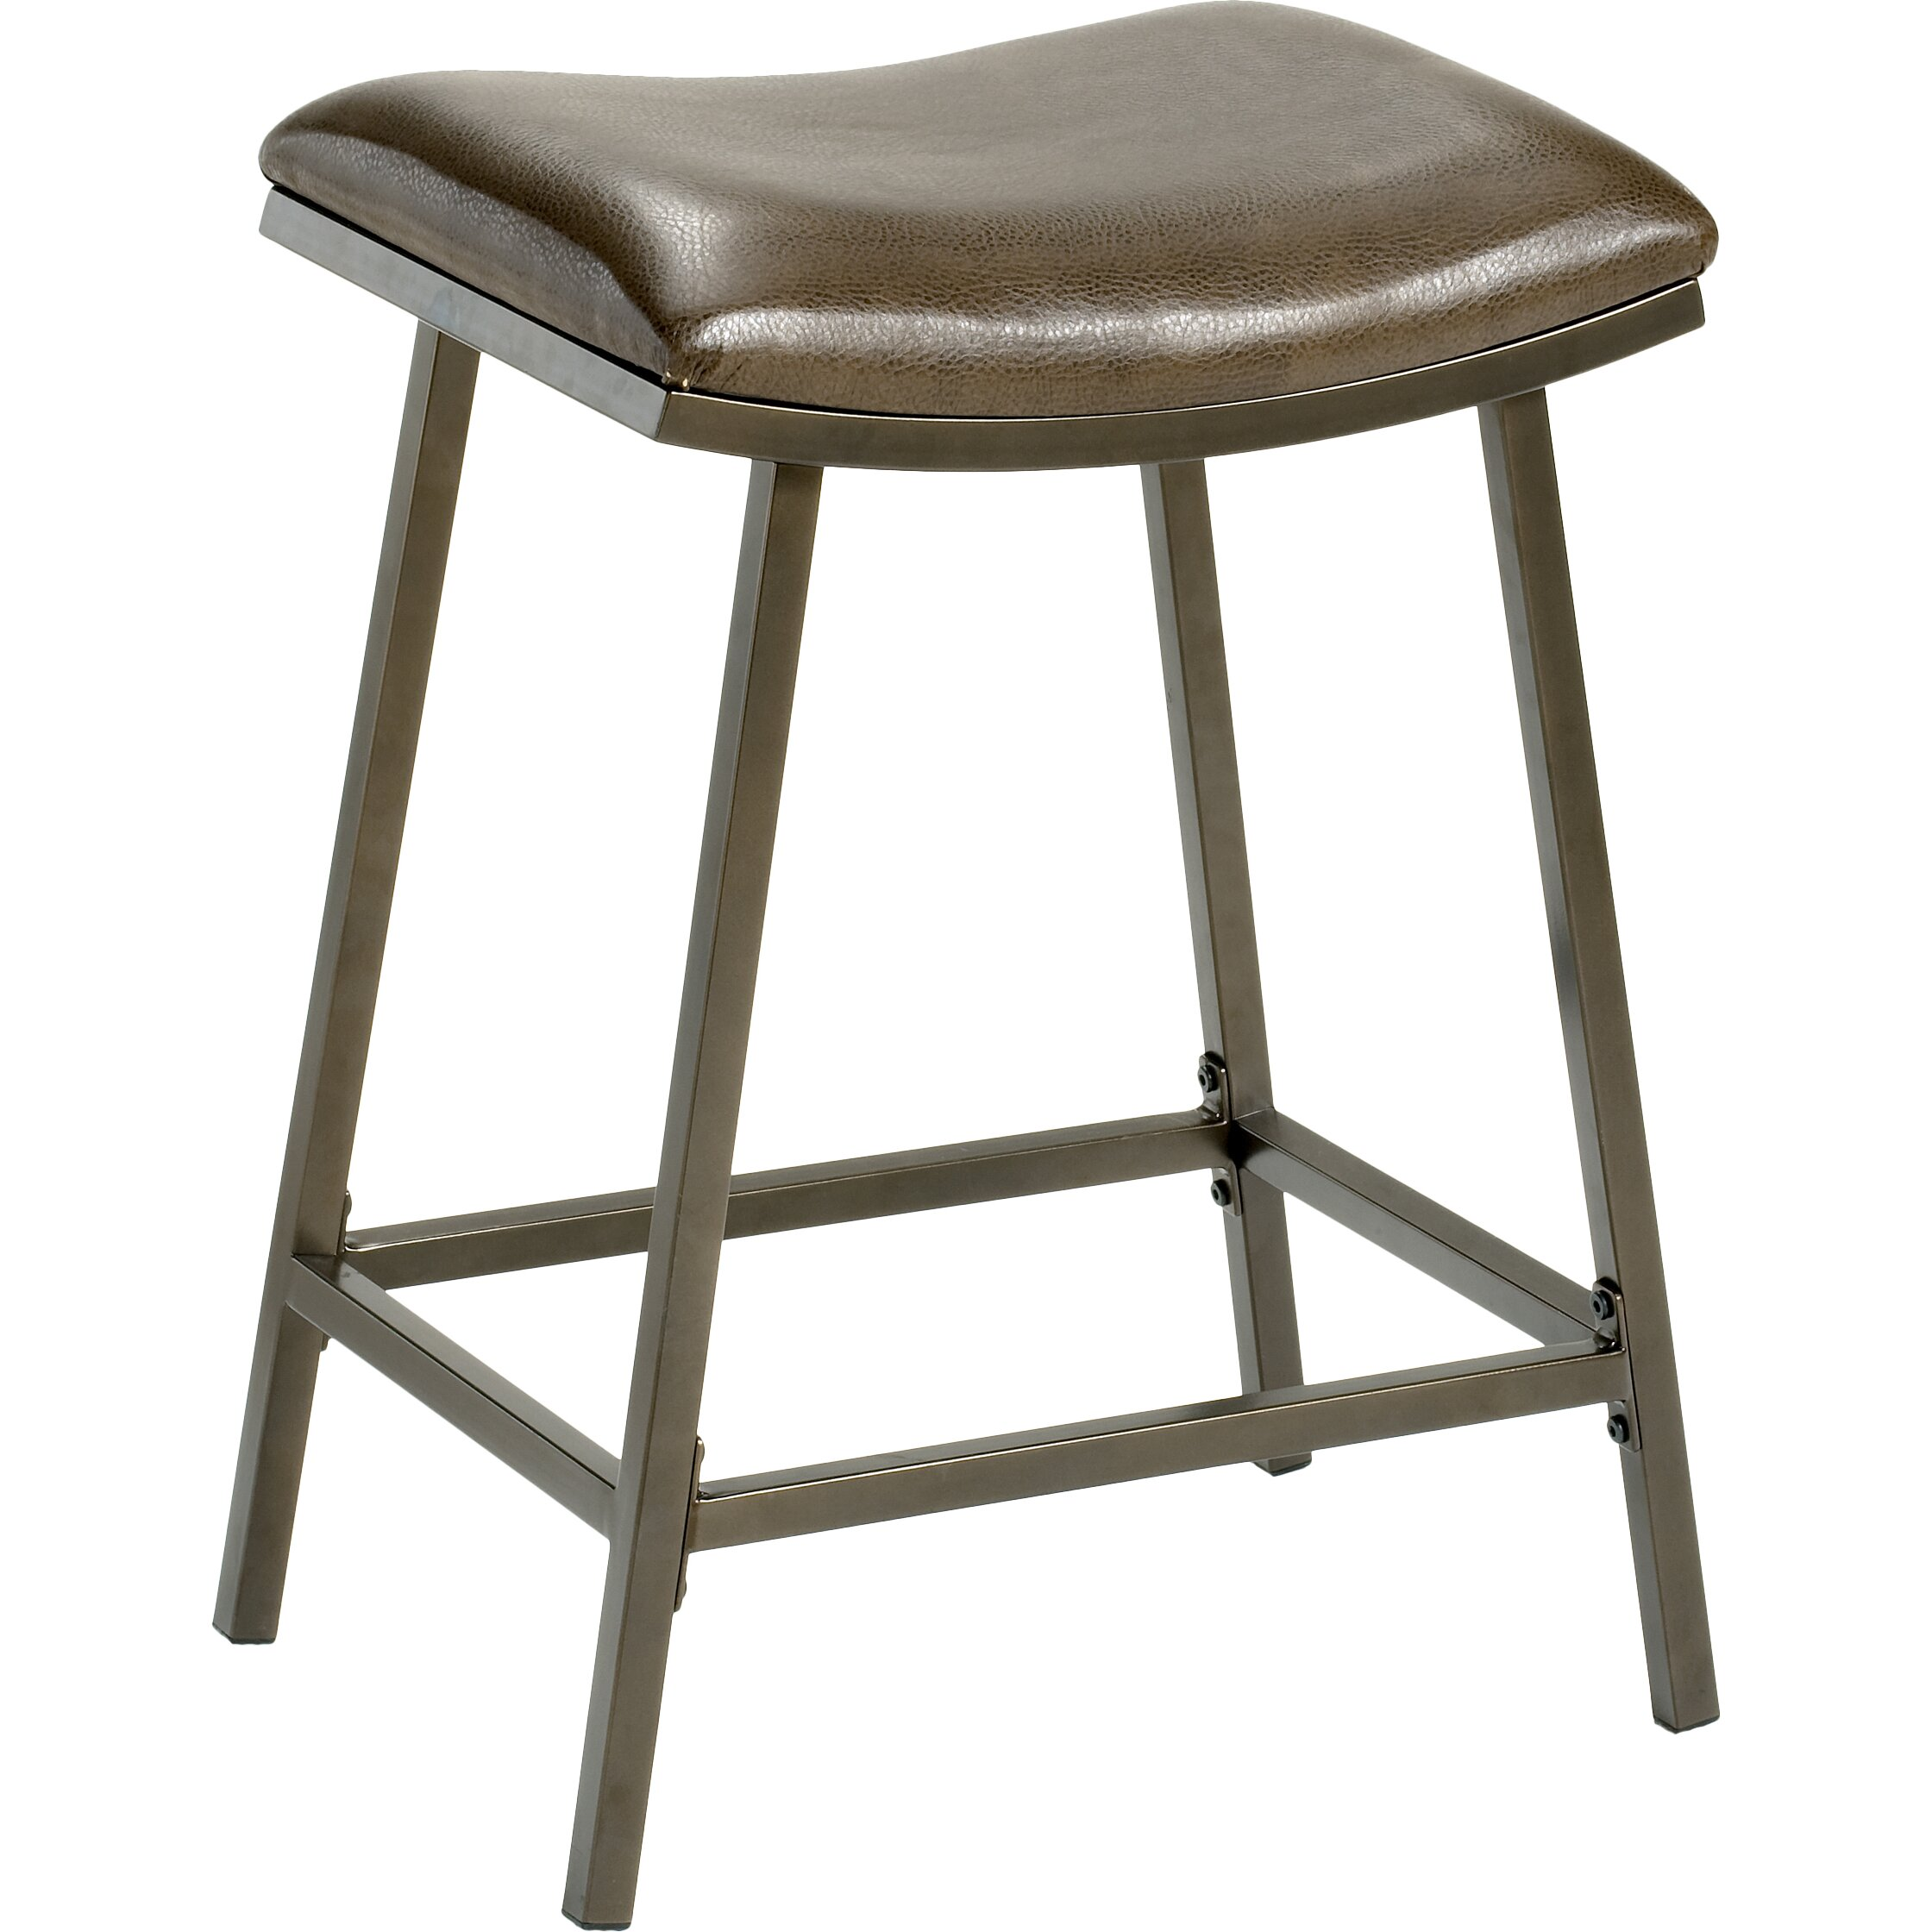 latitude run kaylee adjustable height bar stool reviews wayfair